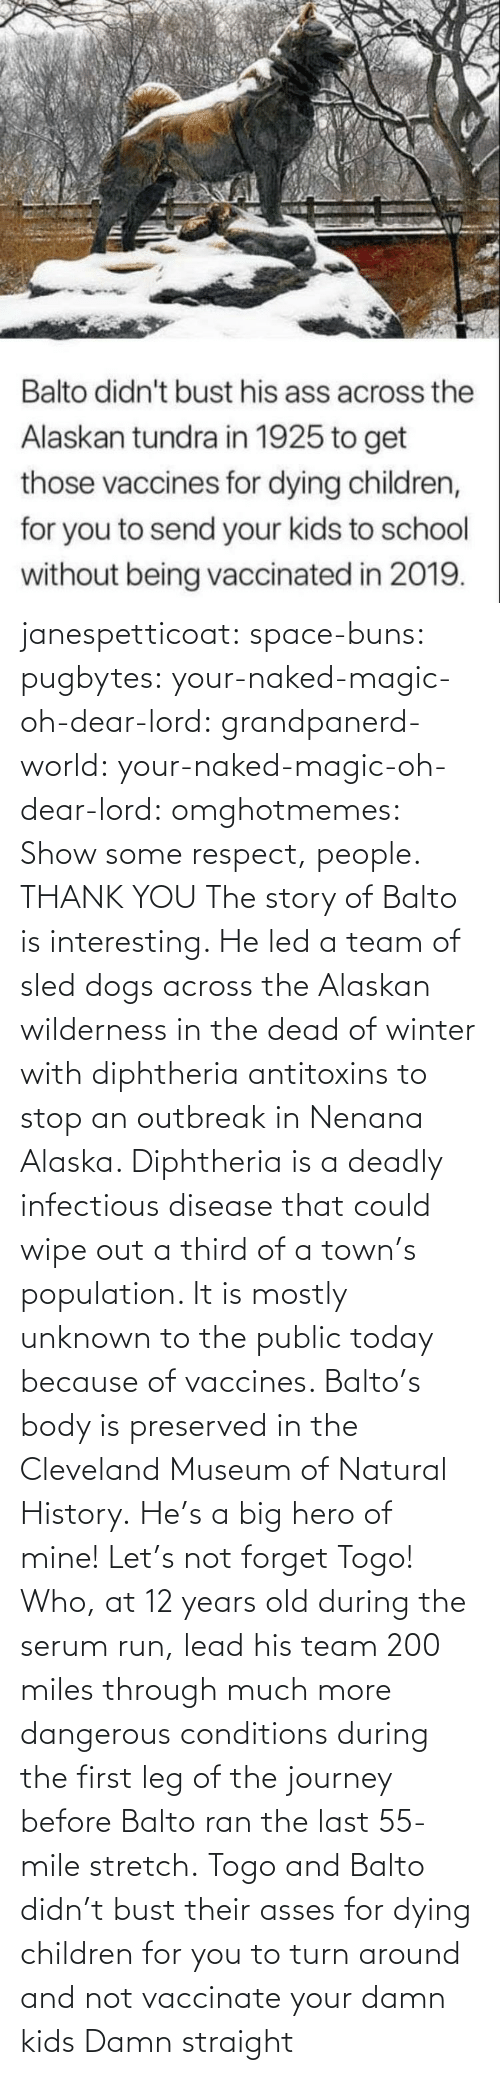 team: janespetticoat: space-buns:  pugbytes:   your-naked-magic-oh-dear-lord:  grandpanerd-world:   your-naked-magic-oh-dear-lord:  omghotmemes: Show some respect, people.  THANK YOU   The story of Balto is interesting. He led a team of sled dogs across the Alaskan wilderness in the dead of winter with diphtheria antitoxins to stop an outbreak in Nenana Alaska. Diphtheria is a deadly infectious disease that could wipe out a third of a town's population. It is mostly unknown to the public today because of vaccines. Balto's body is preserved in the Cleveland Museum of Natural History.   He's a big hero of mine!   Let's not forget Togo! Who, at 12 years old during the serum run, lead his team 200 miles through much more dangerous conditions during the first leg of the journey before Balto ran the last 55-mile stretch.   Togo and Balto didn't bust their asses for dying children for you to turn around and not vaccinate your damn kids    Damn straight